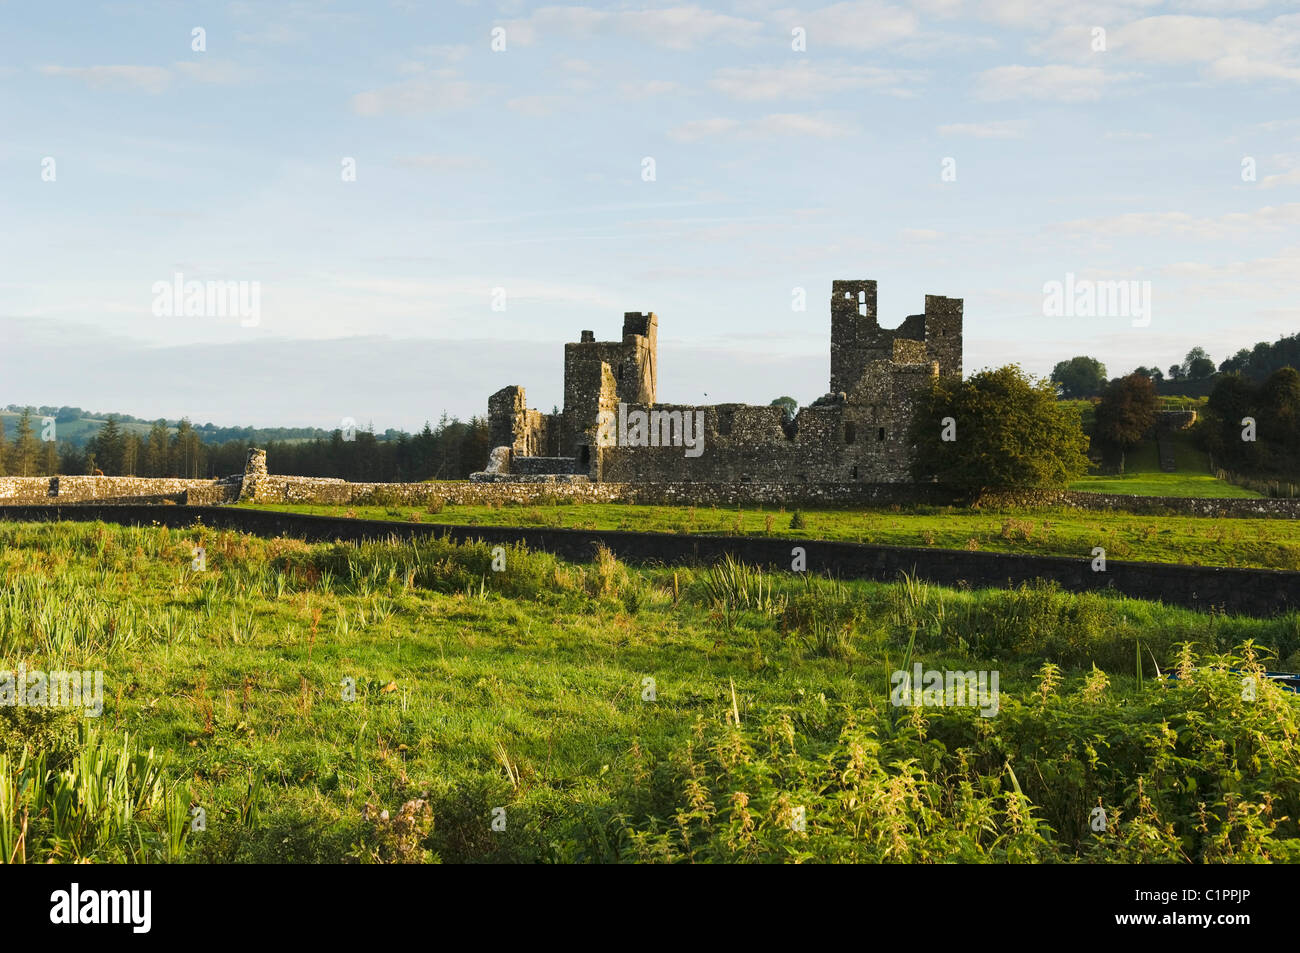 Republic of Ireland, Boyne Valley, West Meath, Fore Abbey - Stock Image